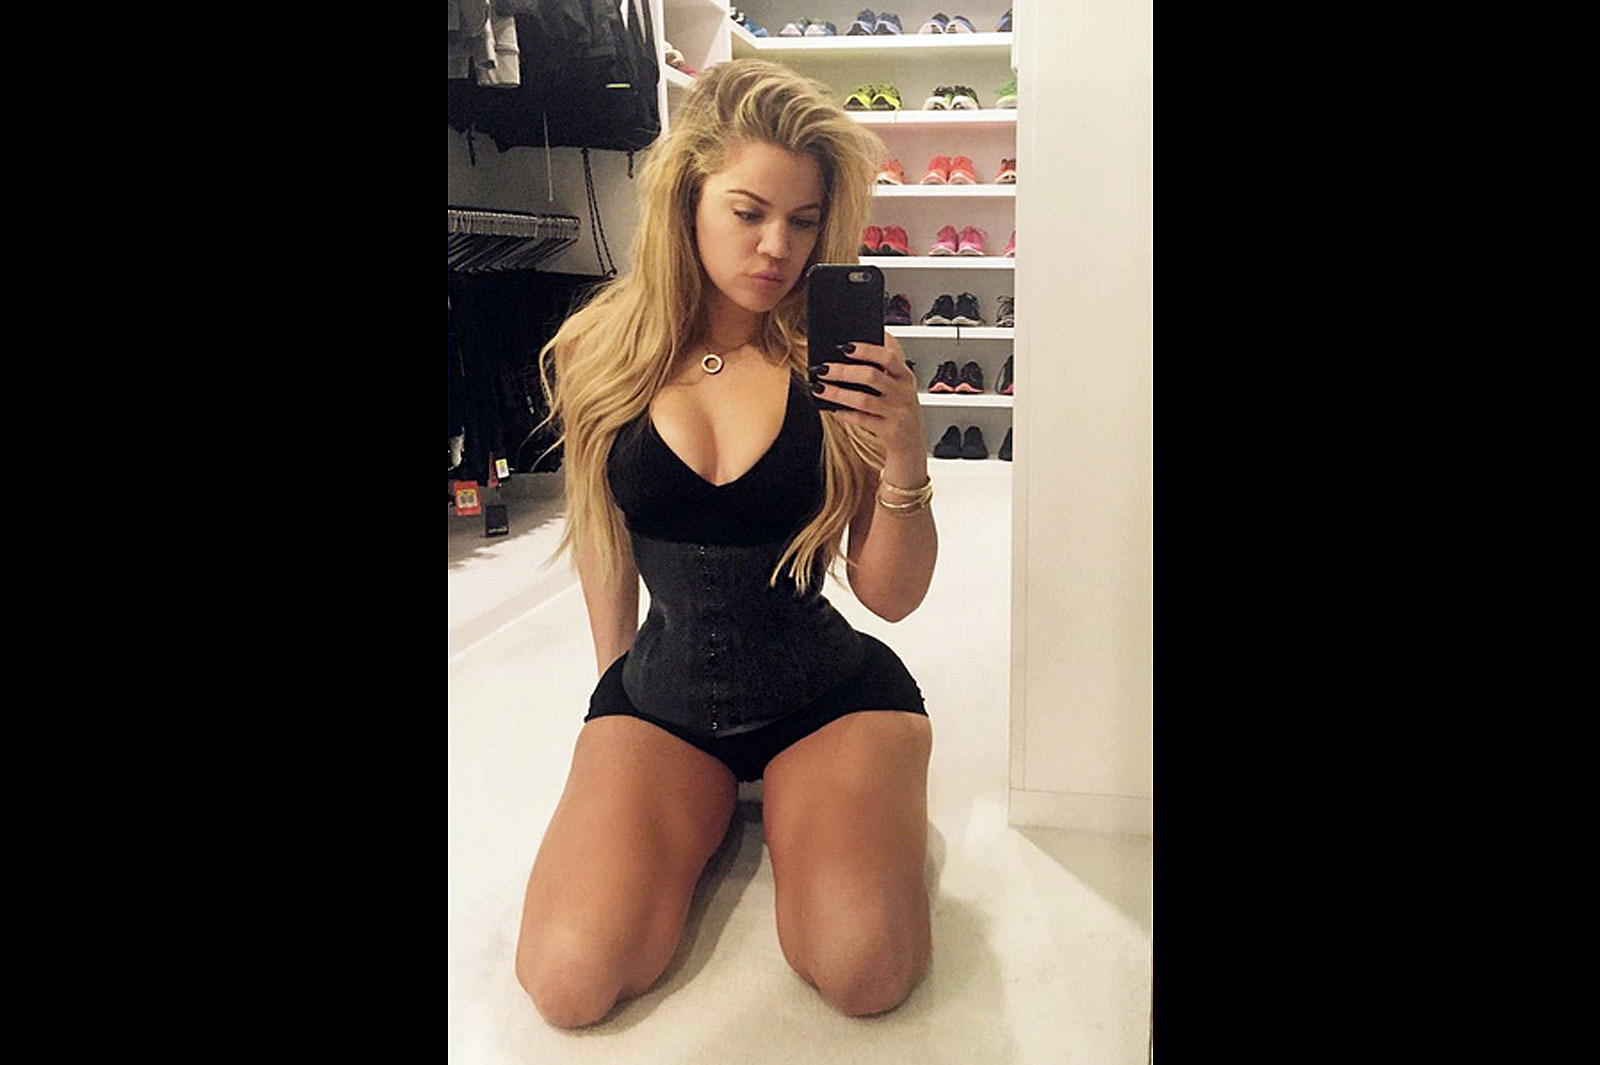 XXX Khloe Kardashian nudes (65 foto and video), Topless, Fappening, Instagram, swimsuit 2019